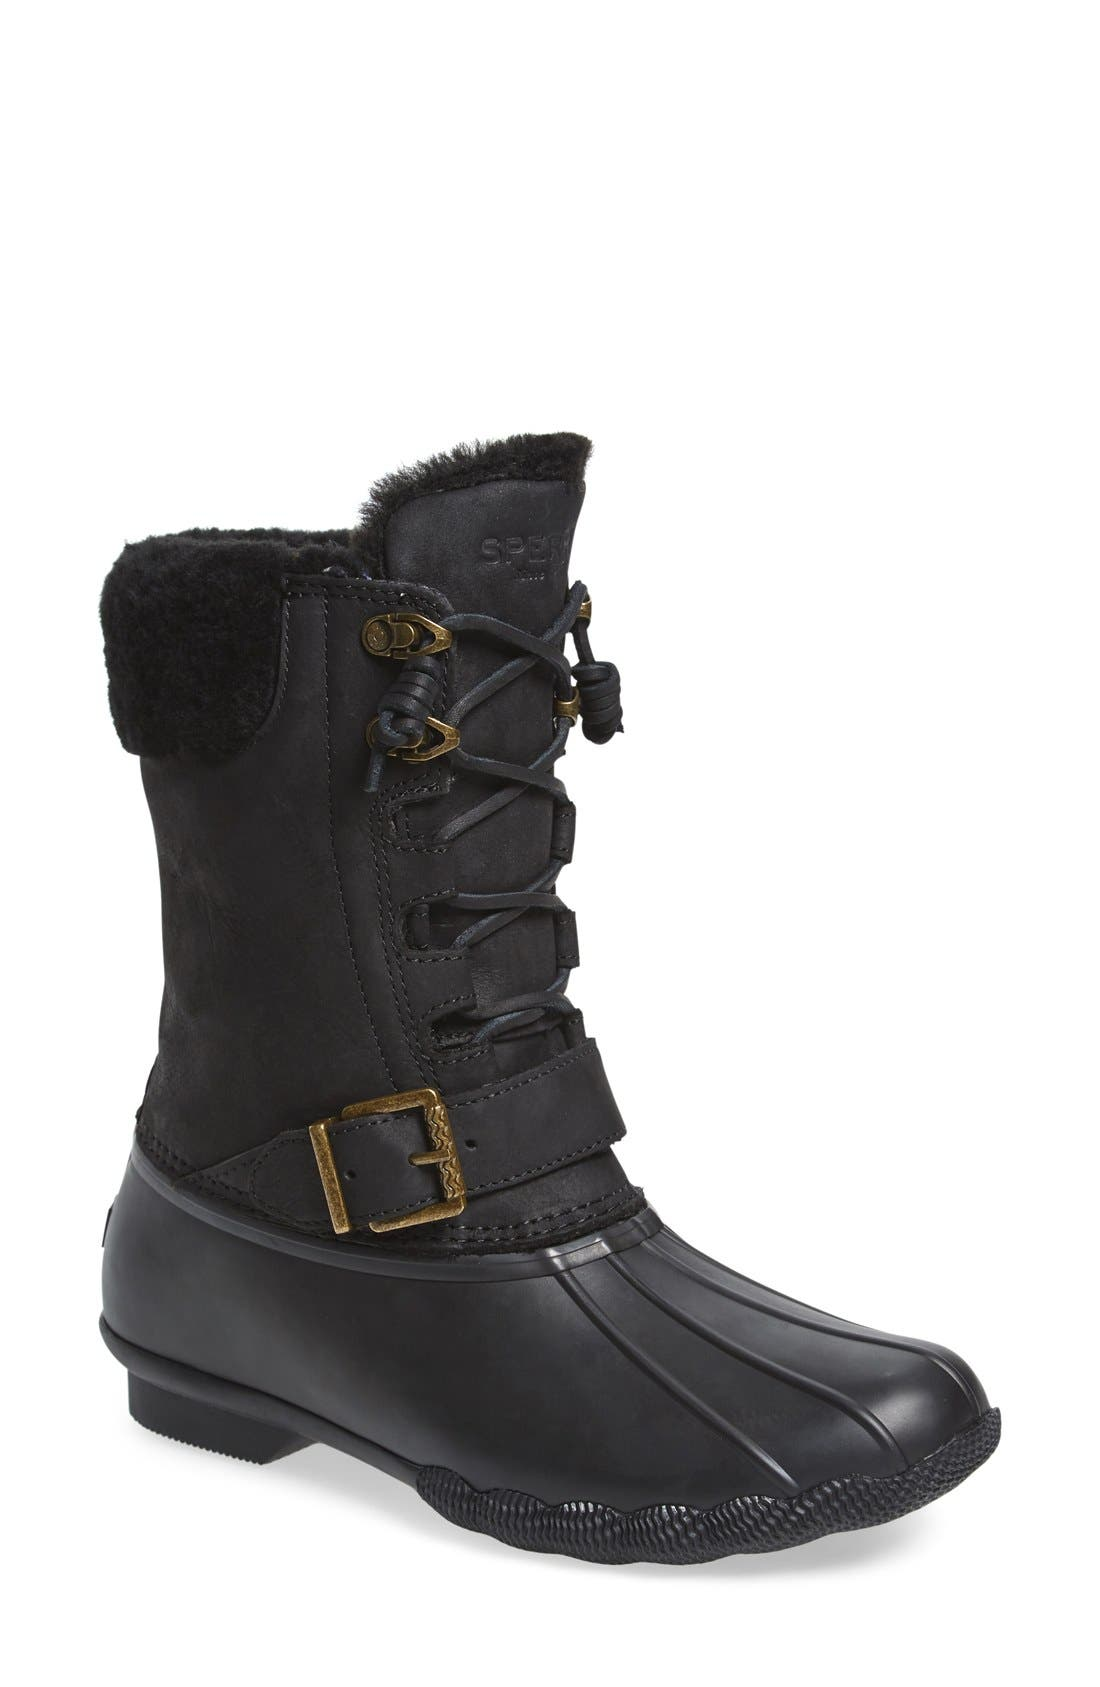 Main Image - Sperry Saltwater Misty Waterproof Rain Boot (Women)